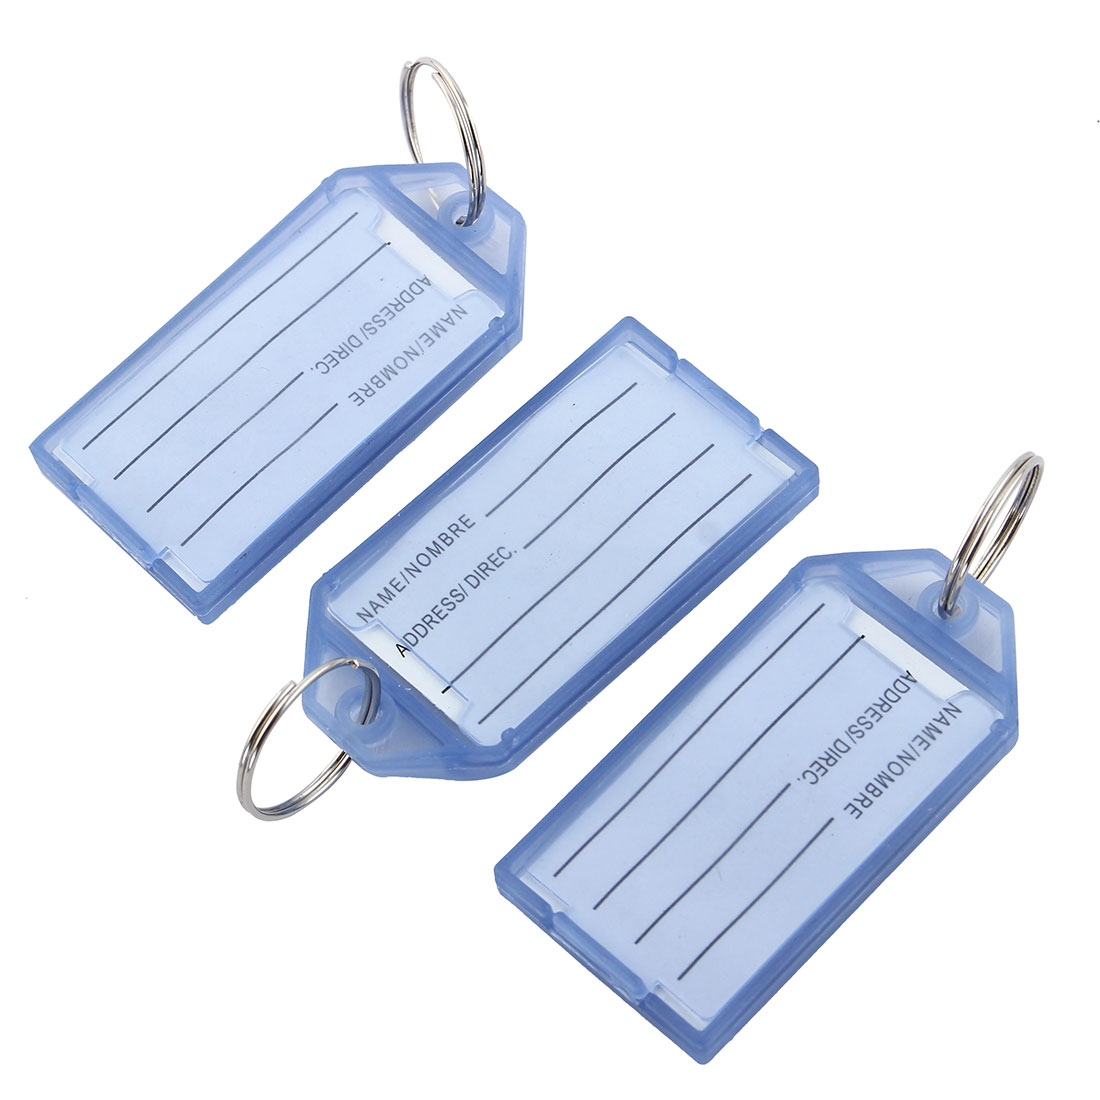 Travel Outdoor Plastic Rectangle Shaped Suitcase Luggage Tag Baggage Label Keyring Blue 3pcs